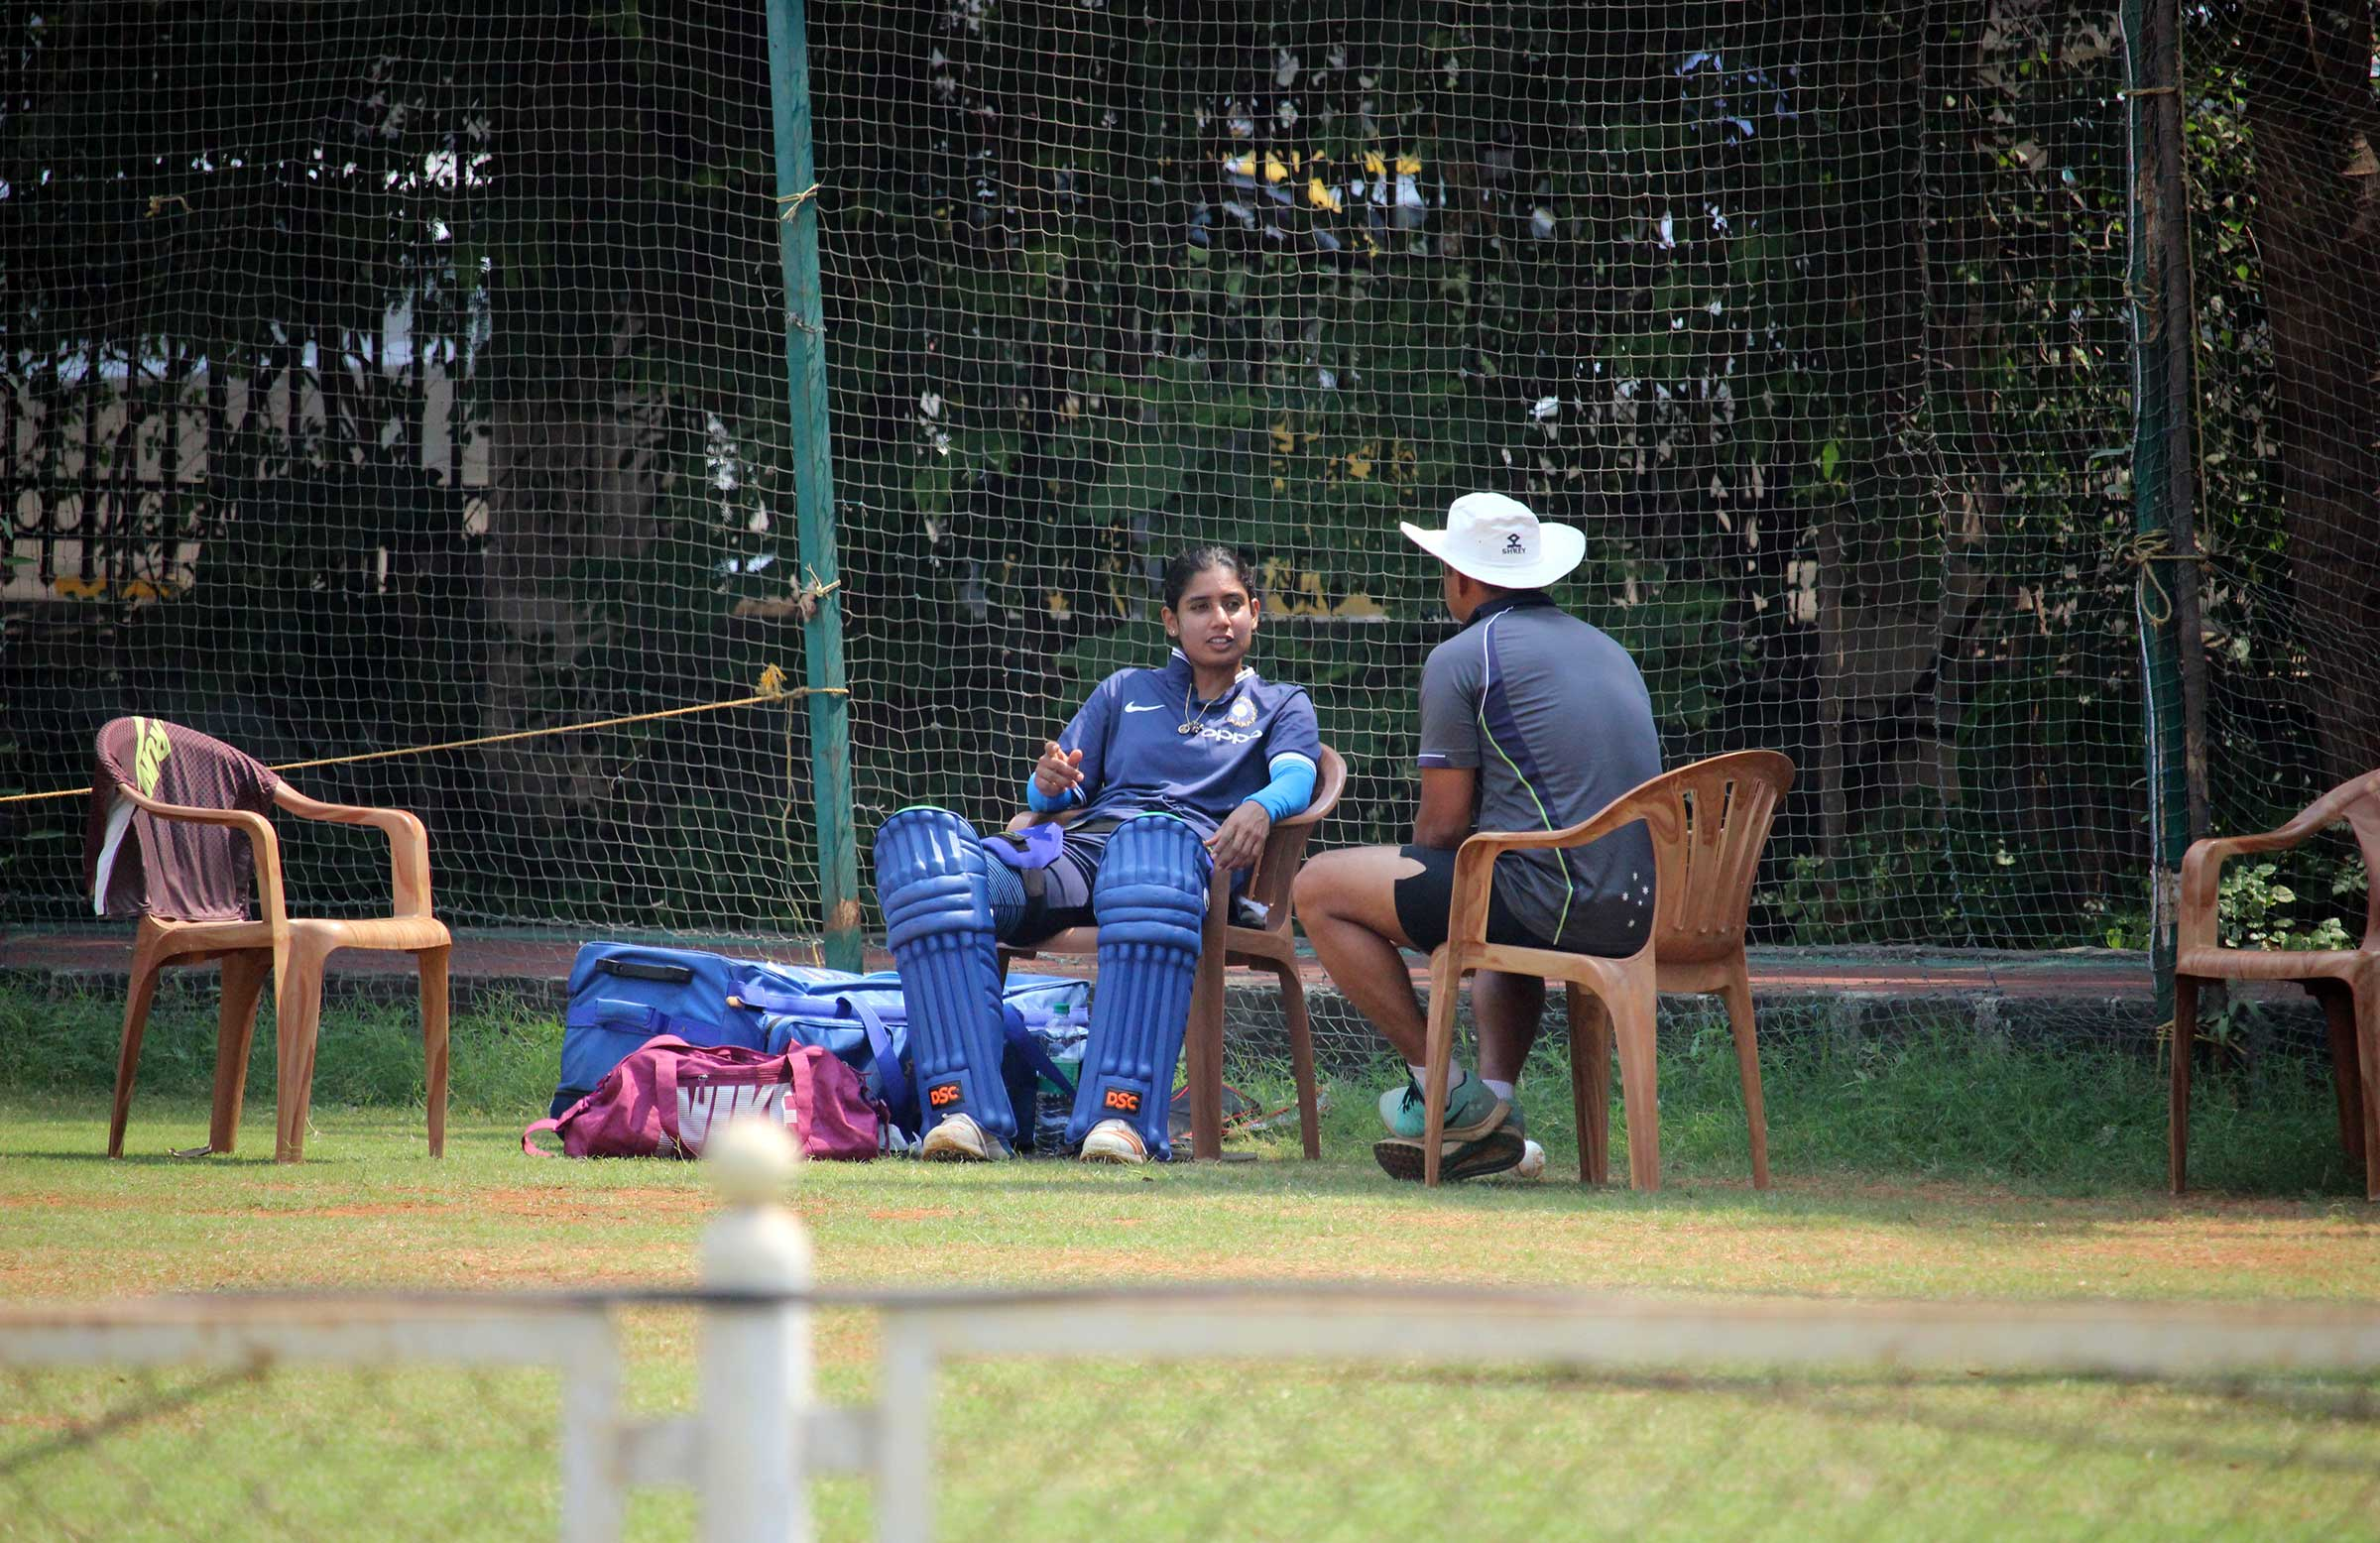 Mithali Raj keeps an eye on the Aussie game // Cricket Network